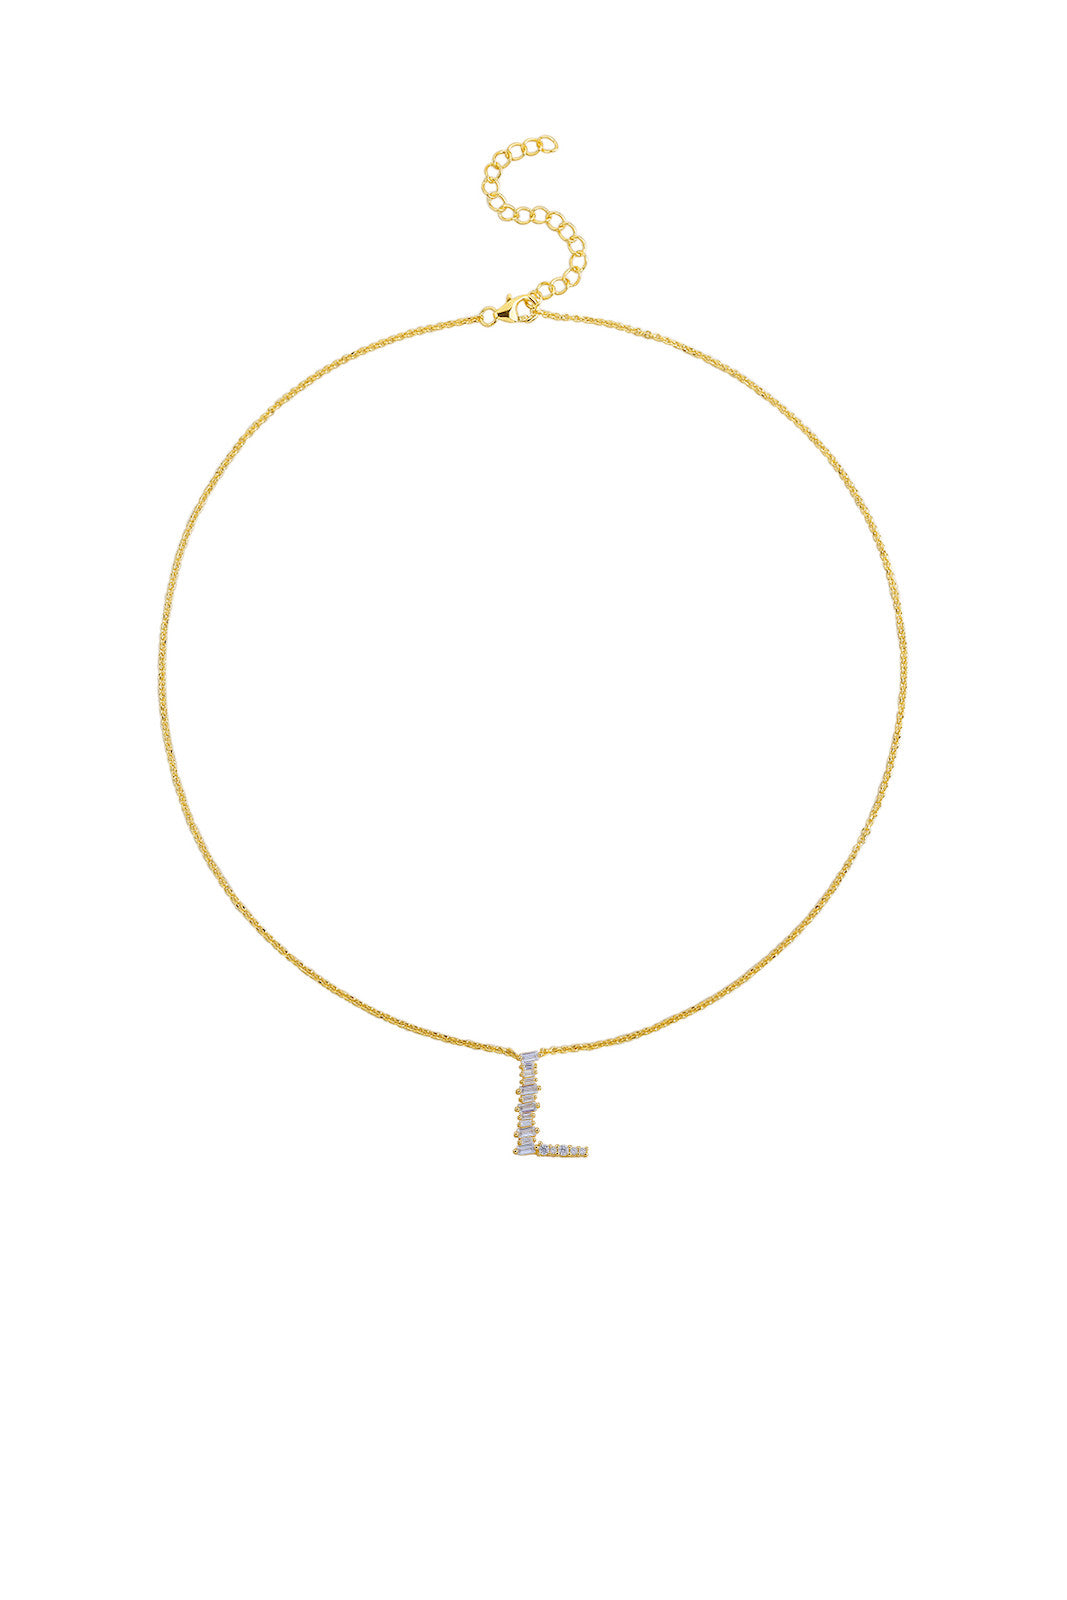 Gold Plated Sterling Silver Initial Necklace - Letter L Detail